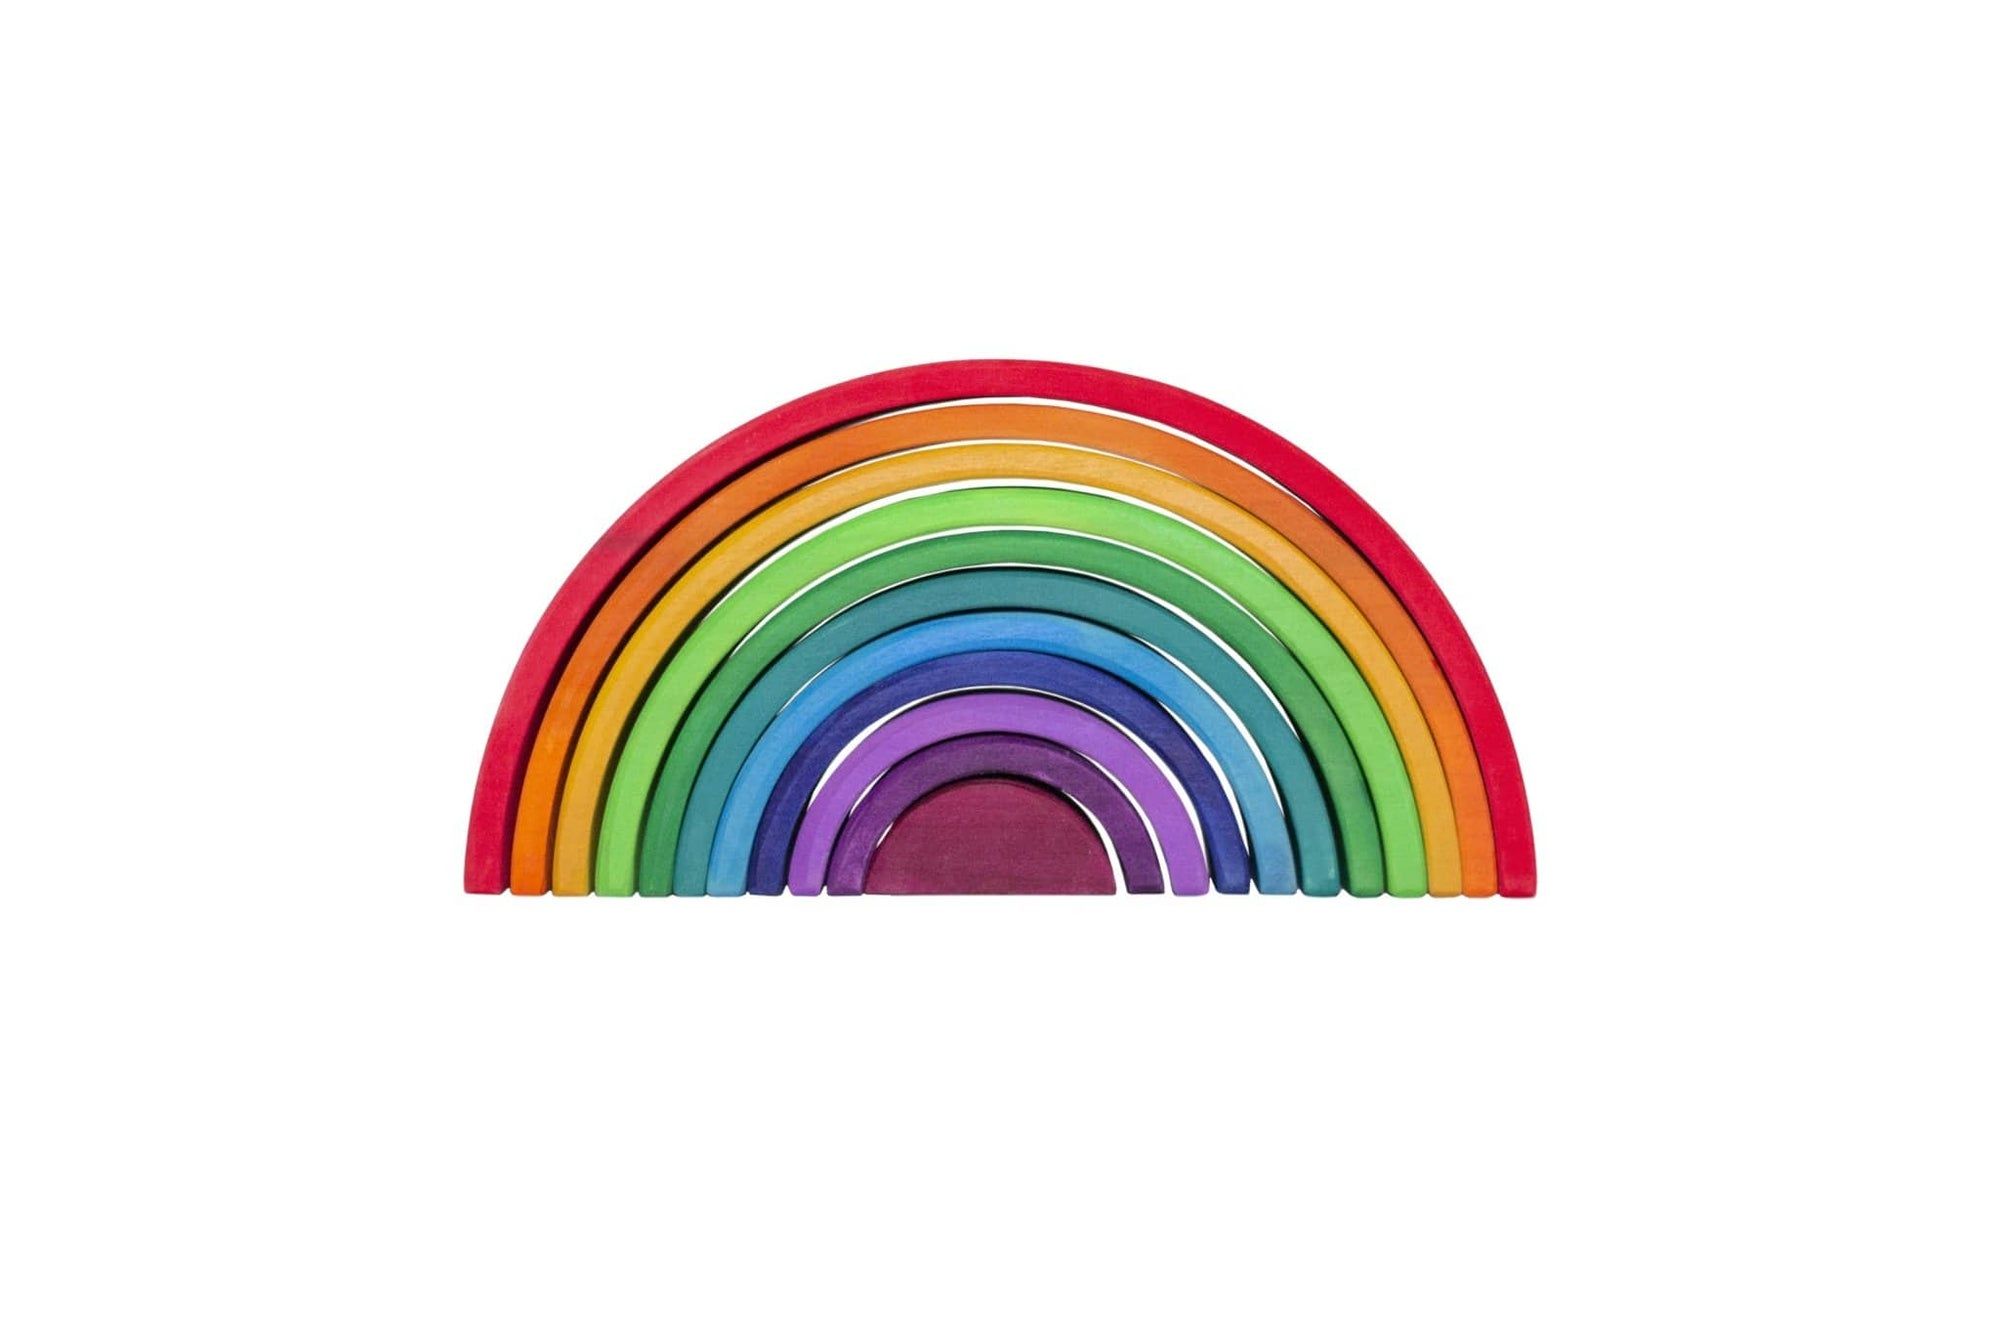 Montessori Large Rainbow stacker - The Montessori Room